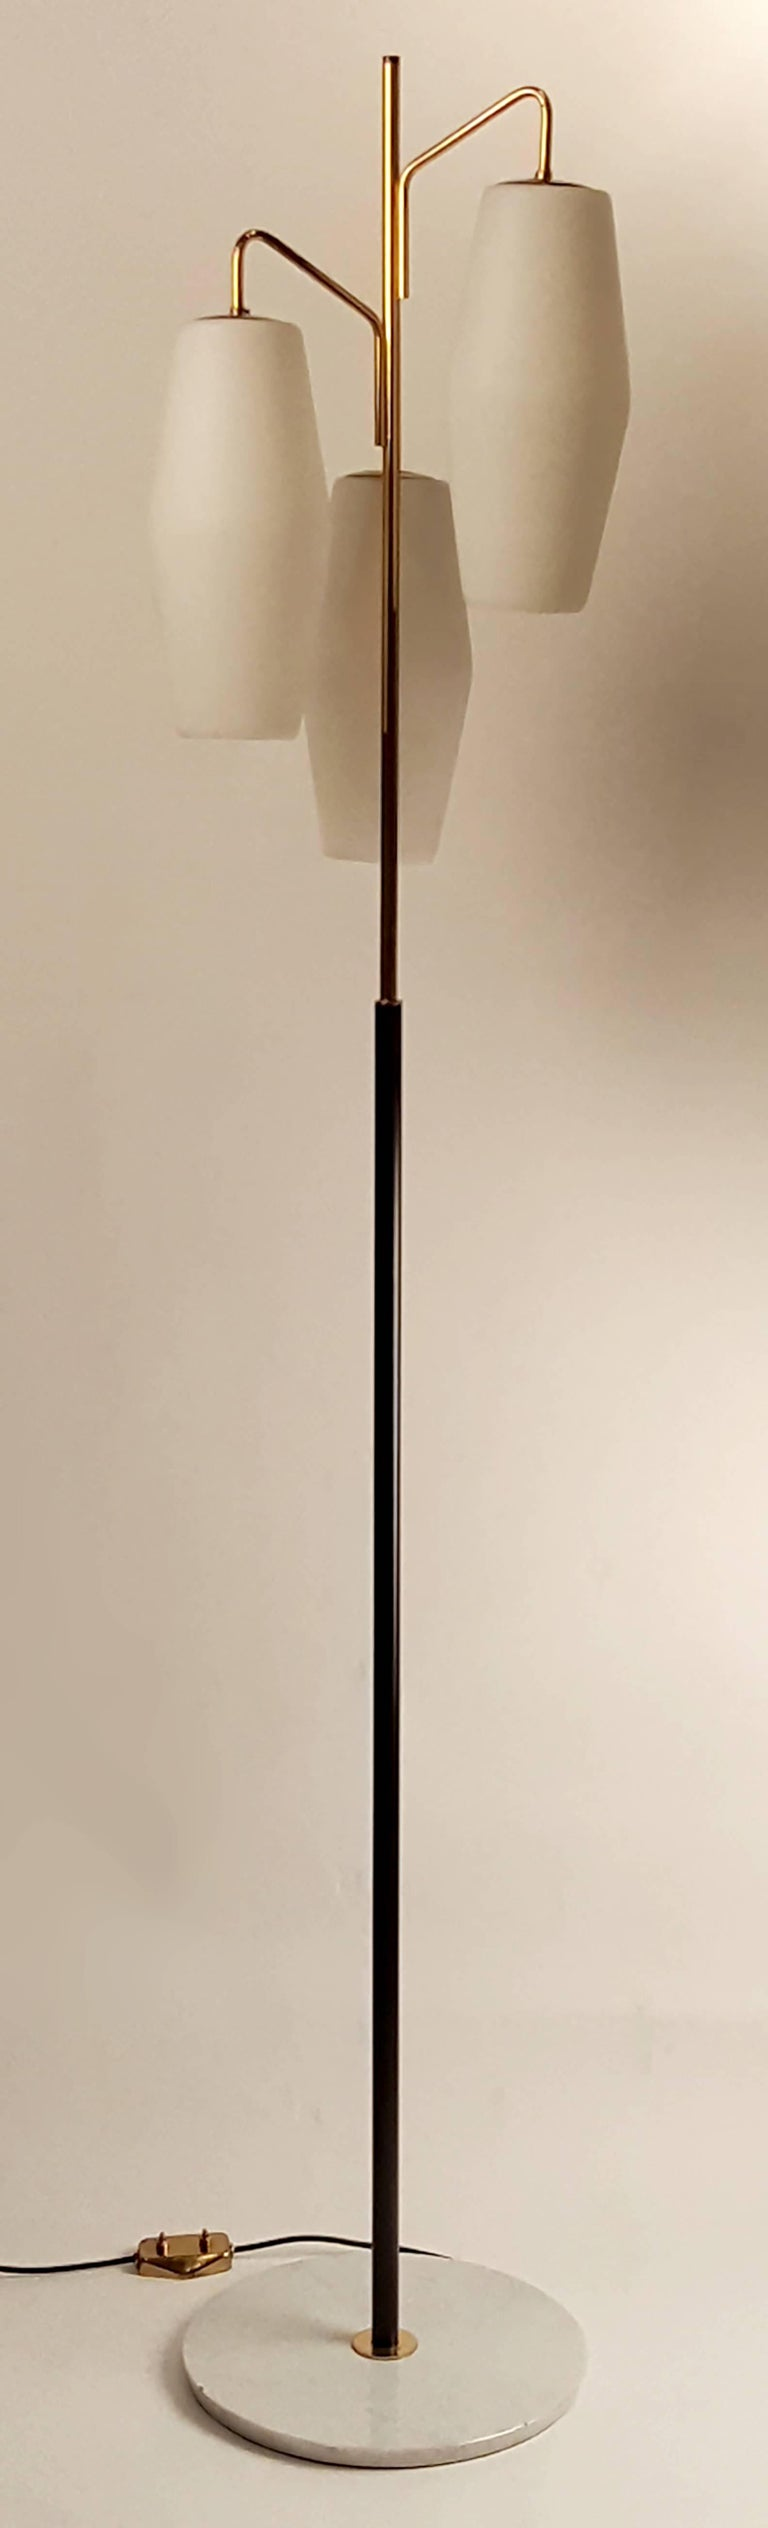 Mid-Century Modern Italian Modernist Stilnovo Floor Lamp with Frosted Glass Shades and Marble Base For Sale